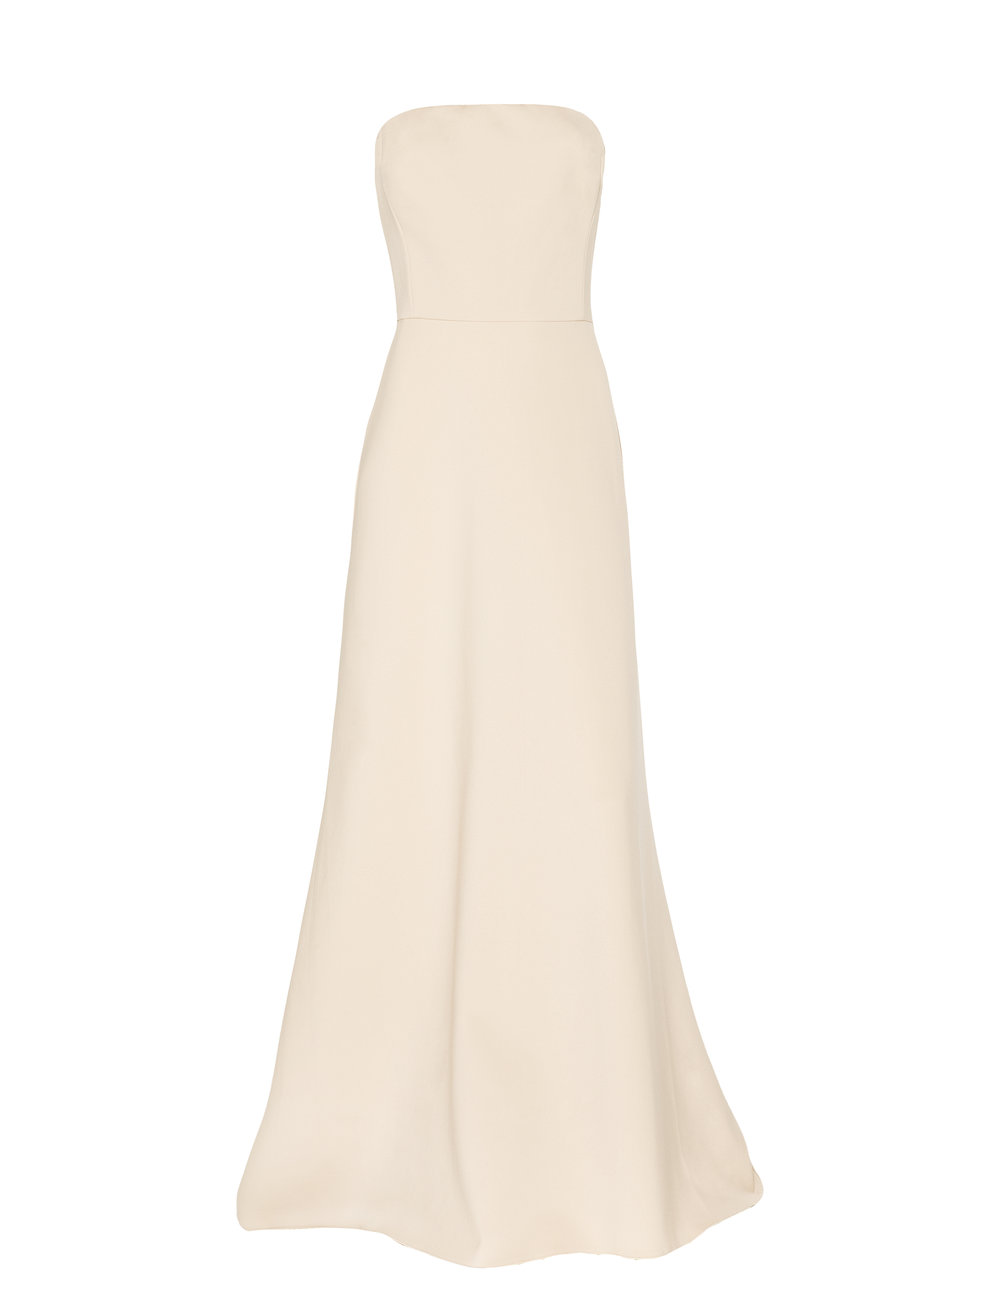 Monique Lhuillier 450497 Blush Stretch Crepe